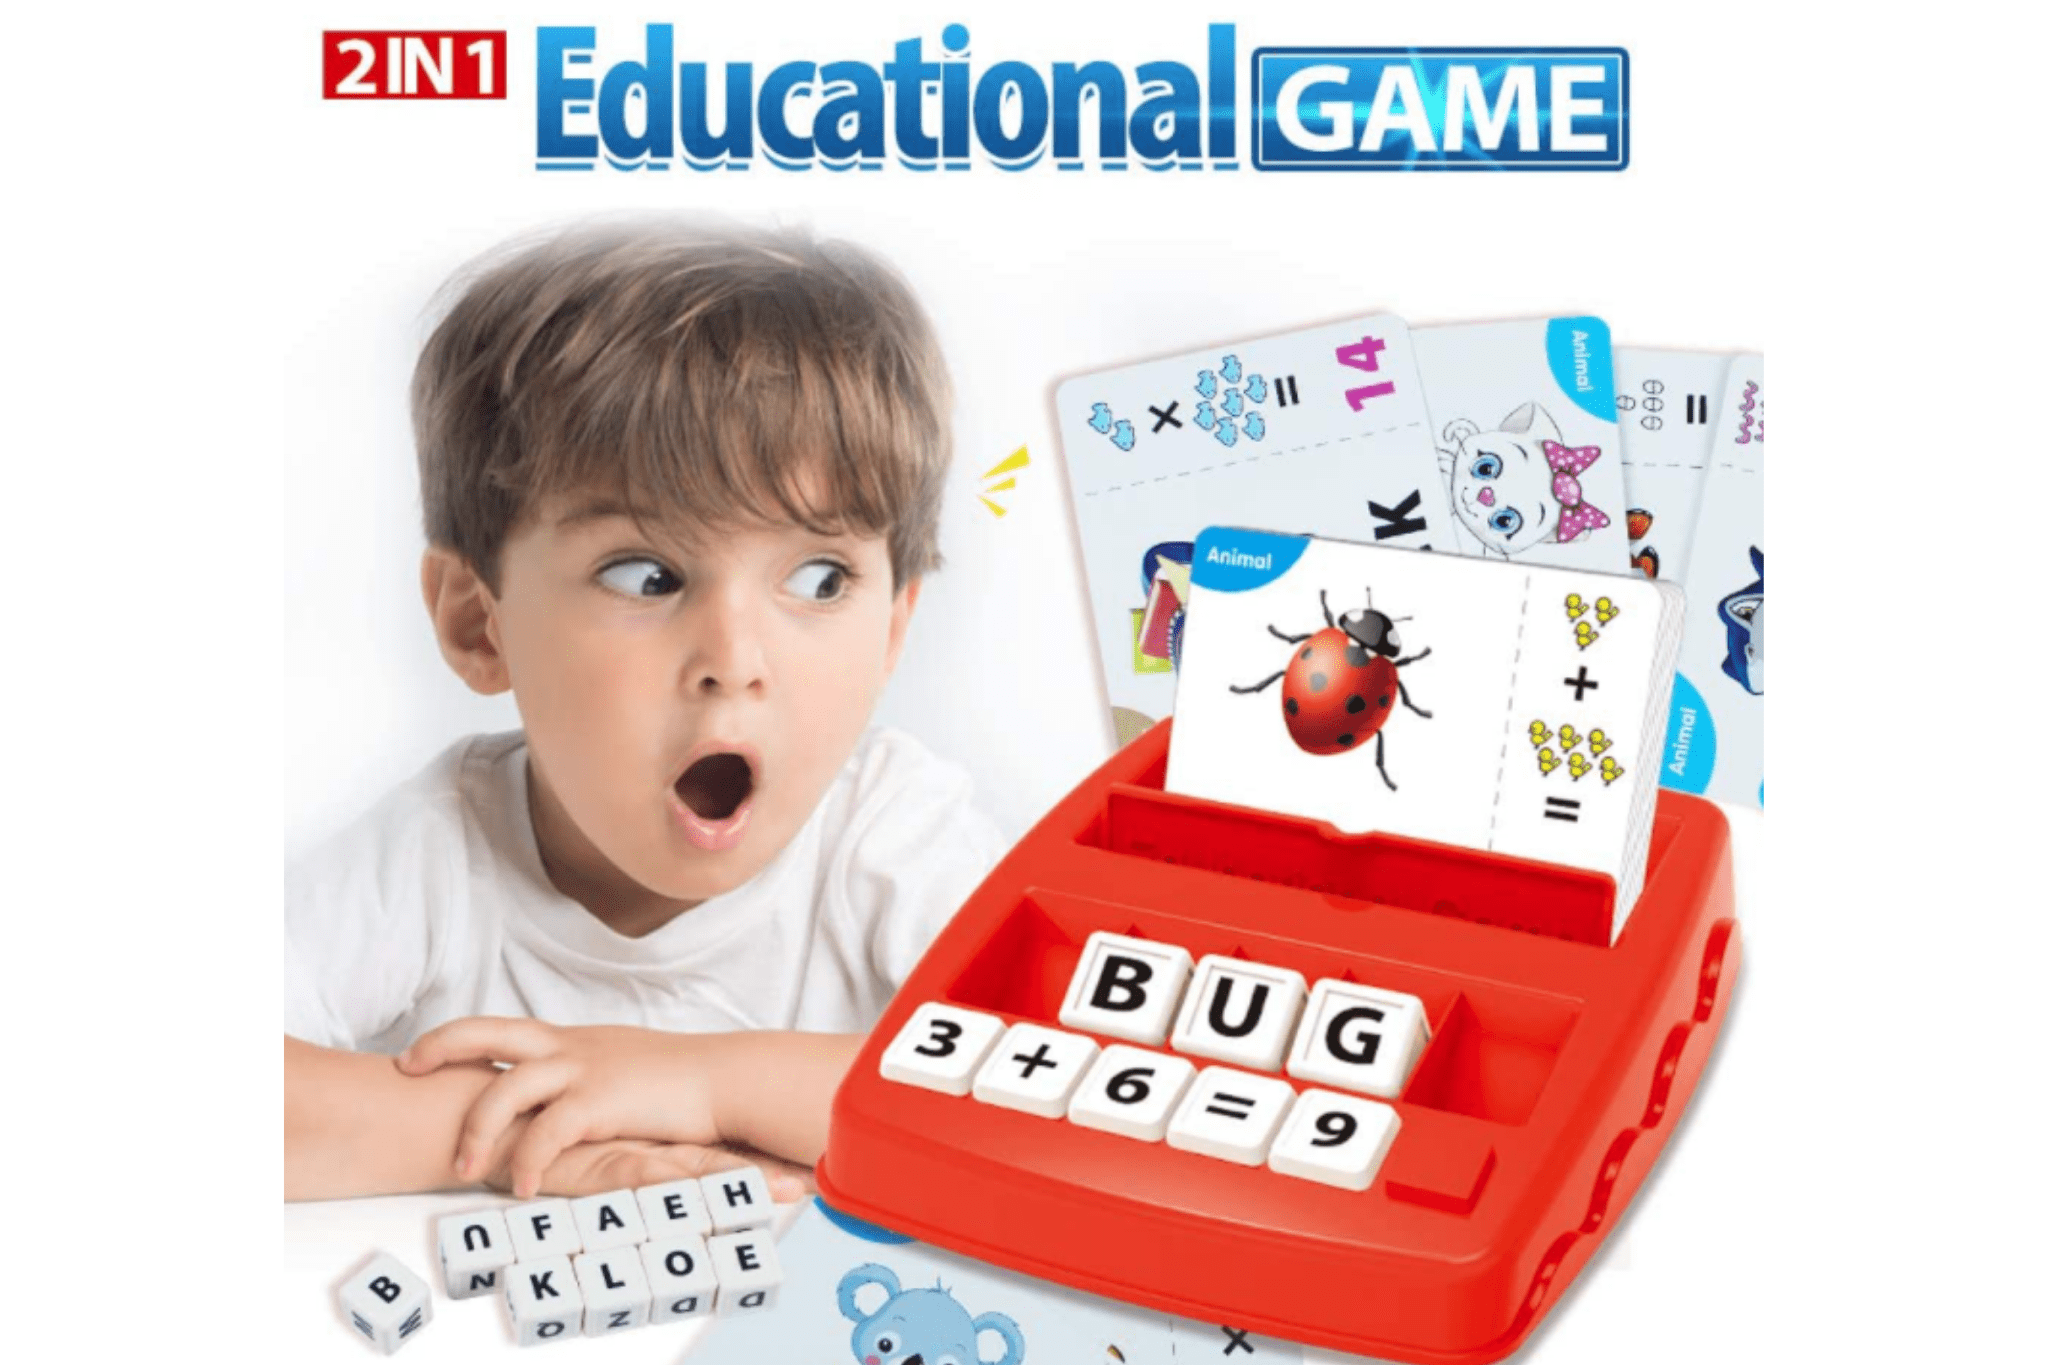 Fun games for 7 year olds